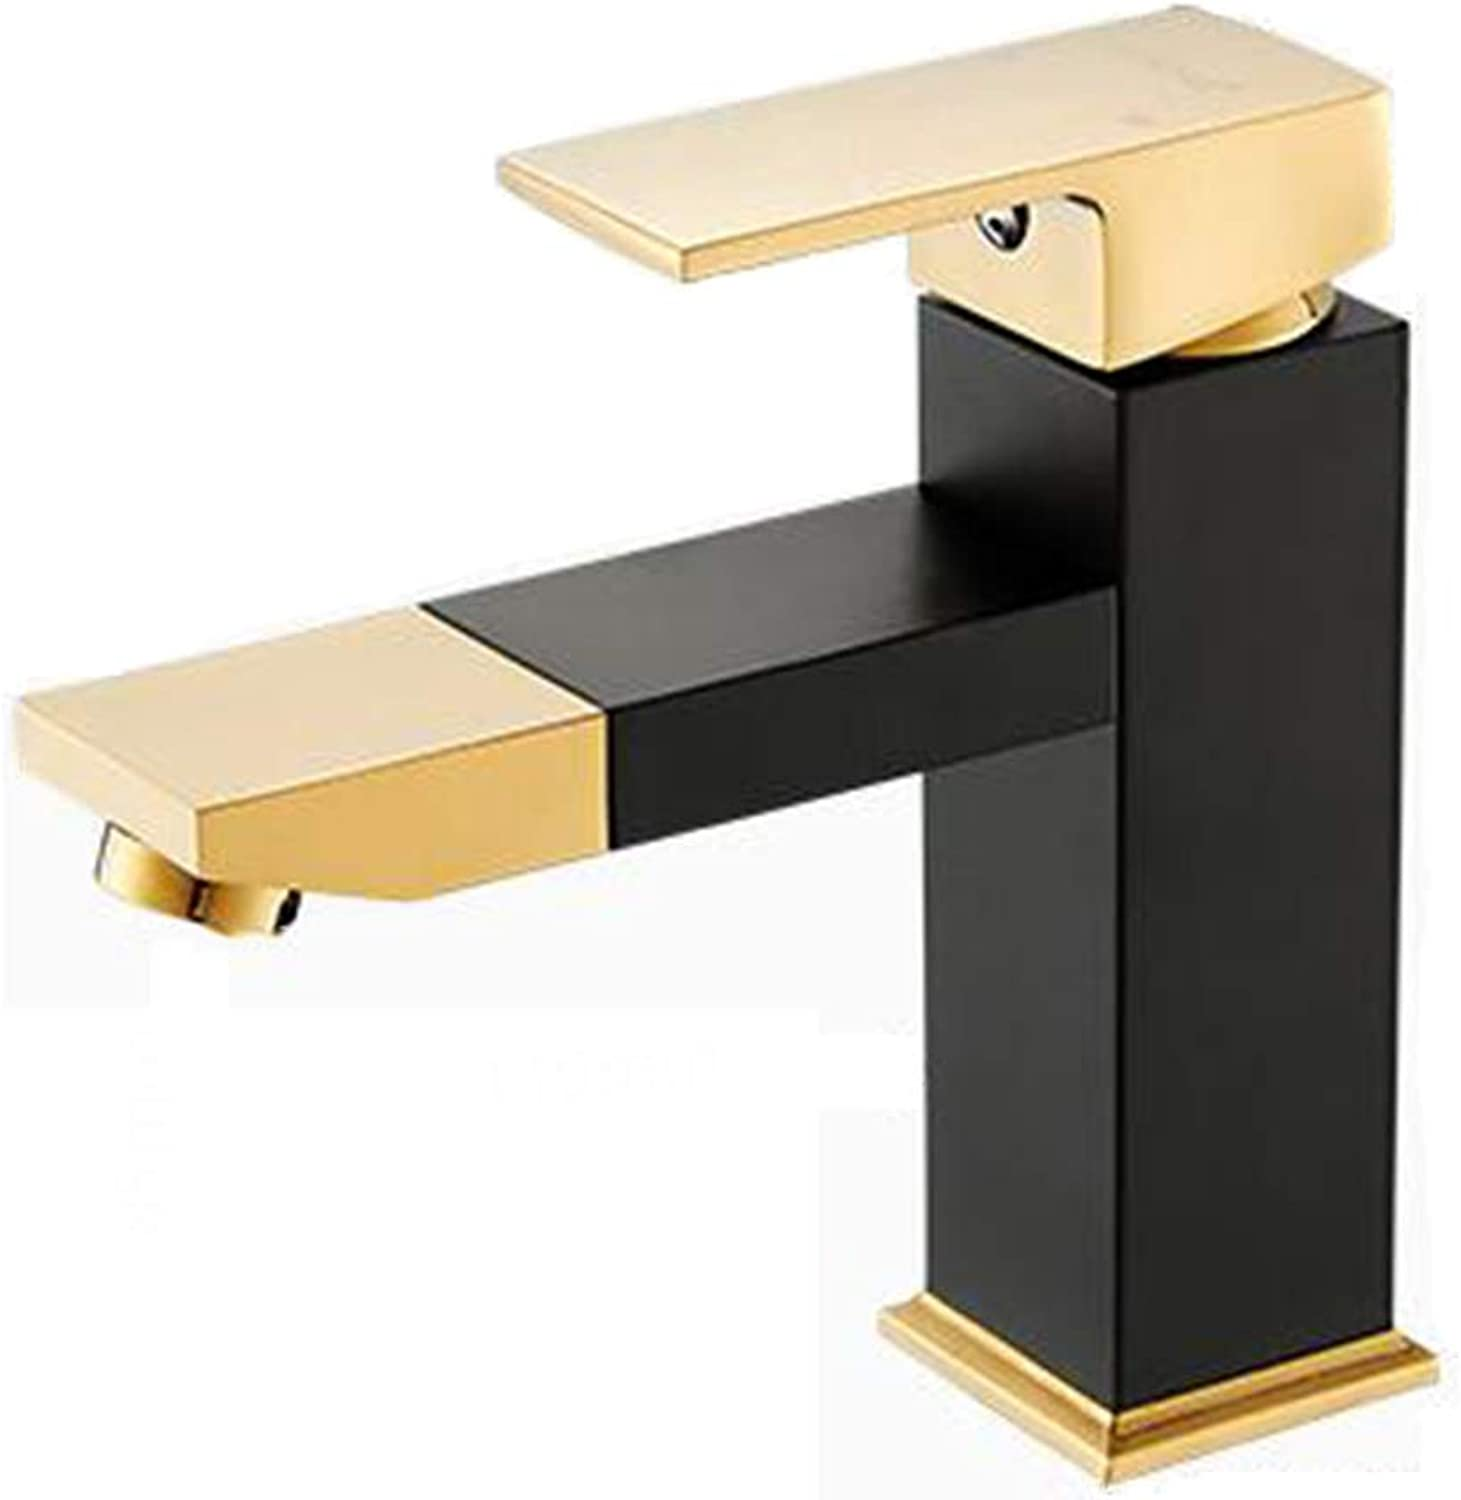 Bathroom Vanity Copper Taps Hot and Cold Nordic Style Black gold Bathroom Single Hole Bathroom Square Faucet